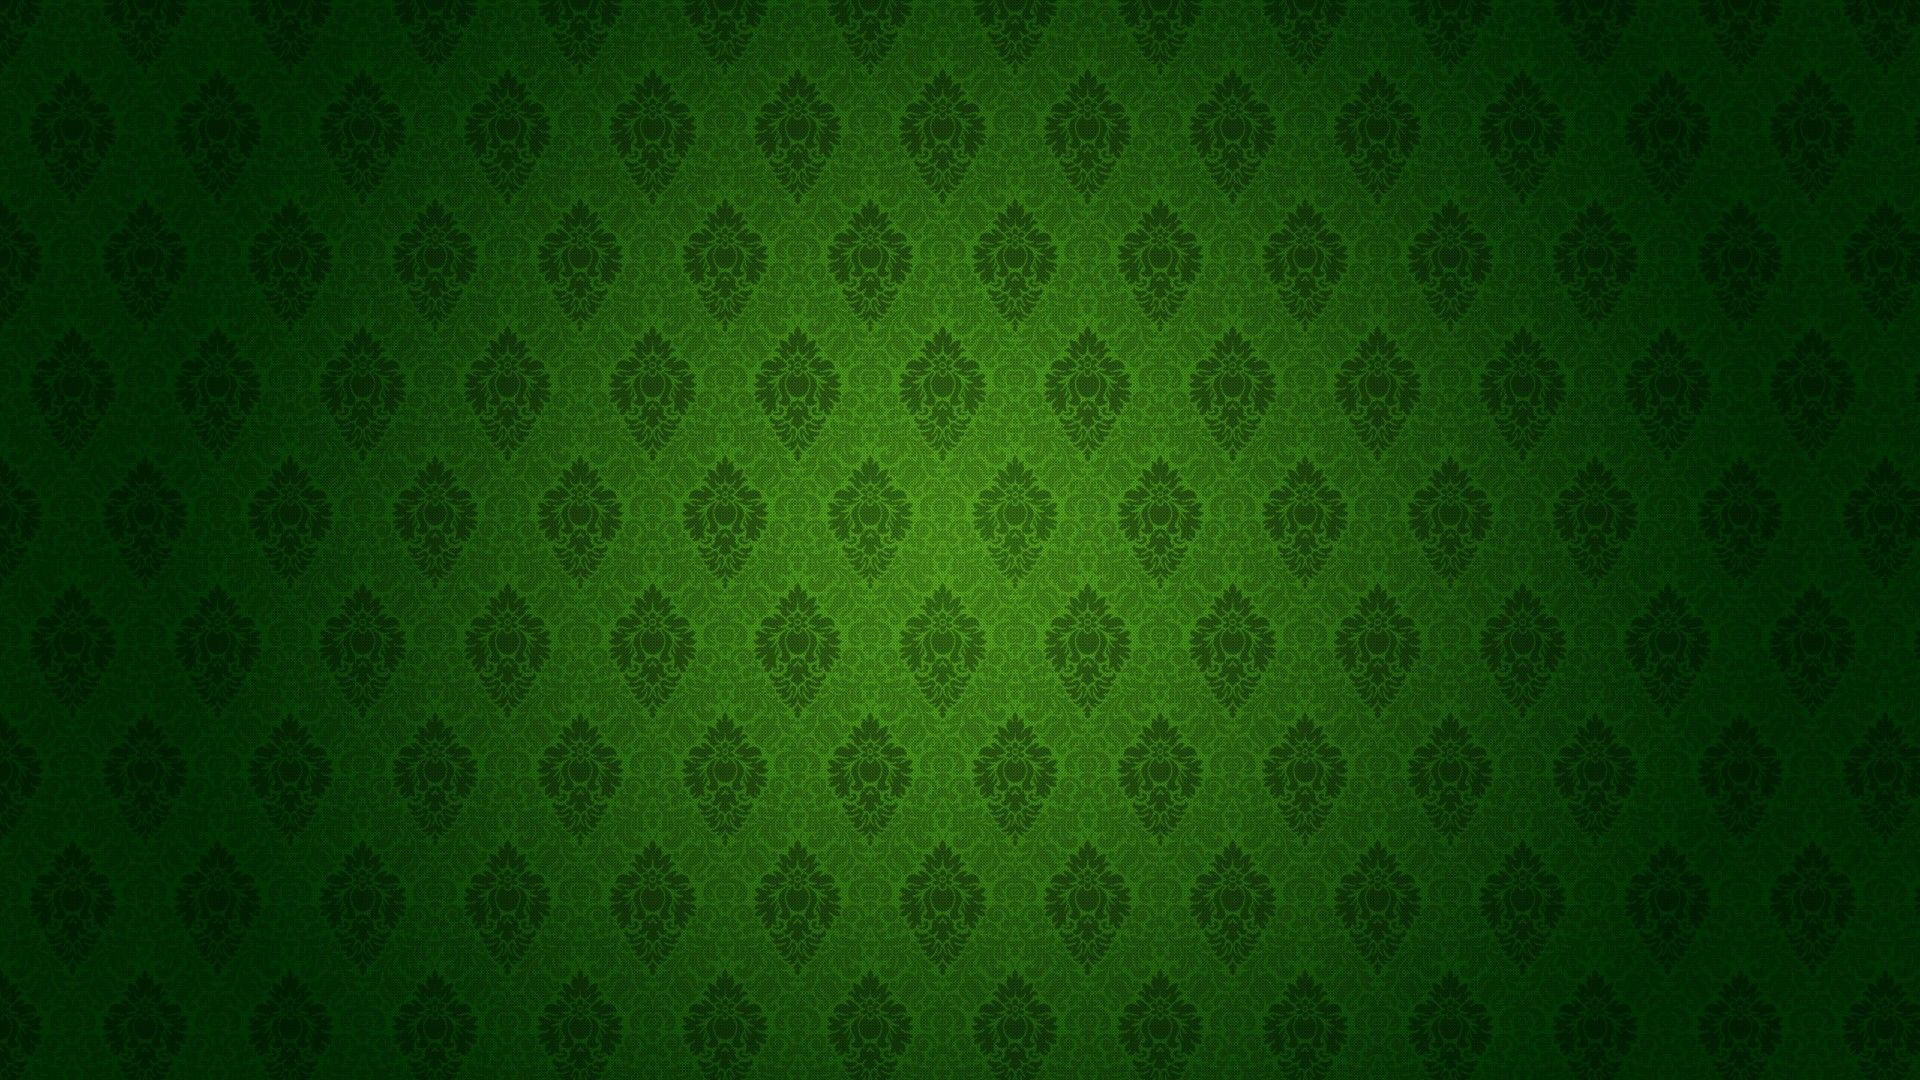 Black And Green Wallpapers 1920 1080 Dark Green Wallpaper 48 Wallpapers Adorable Wallpape Green Wallpaper Dark Green Wallpaper Vintage Floral Backgrounds